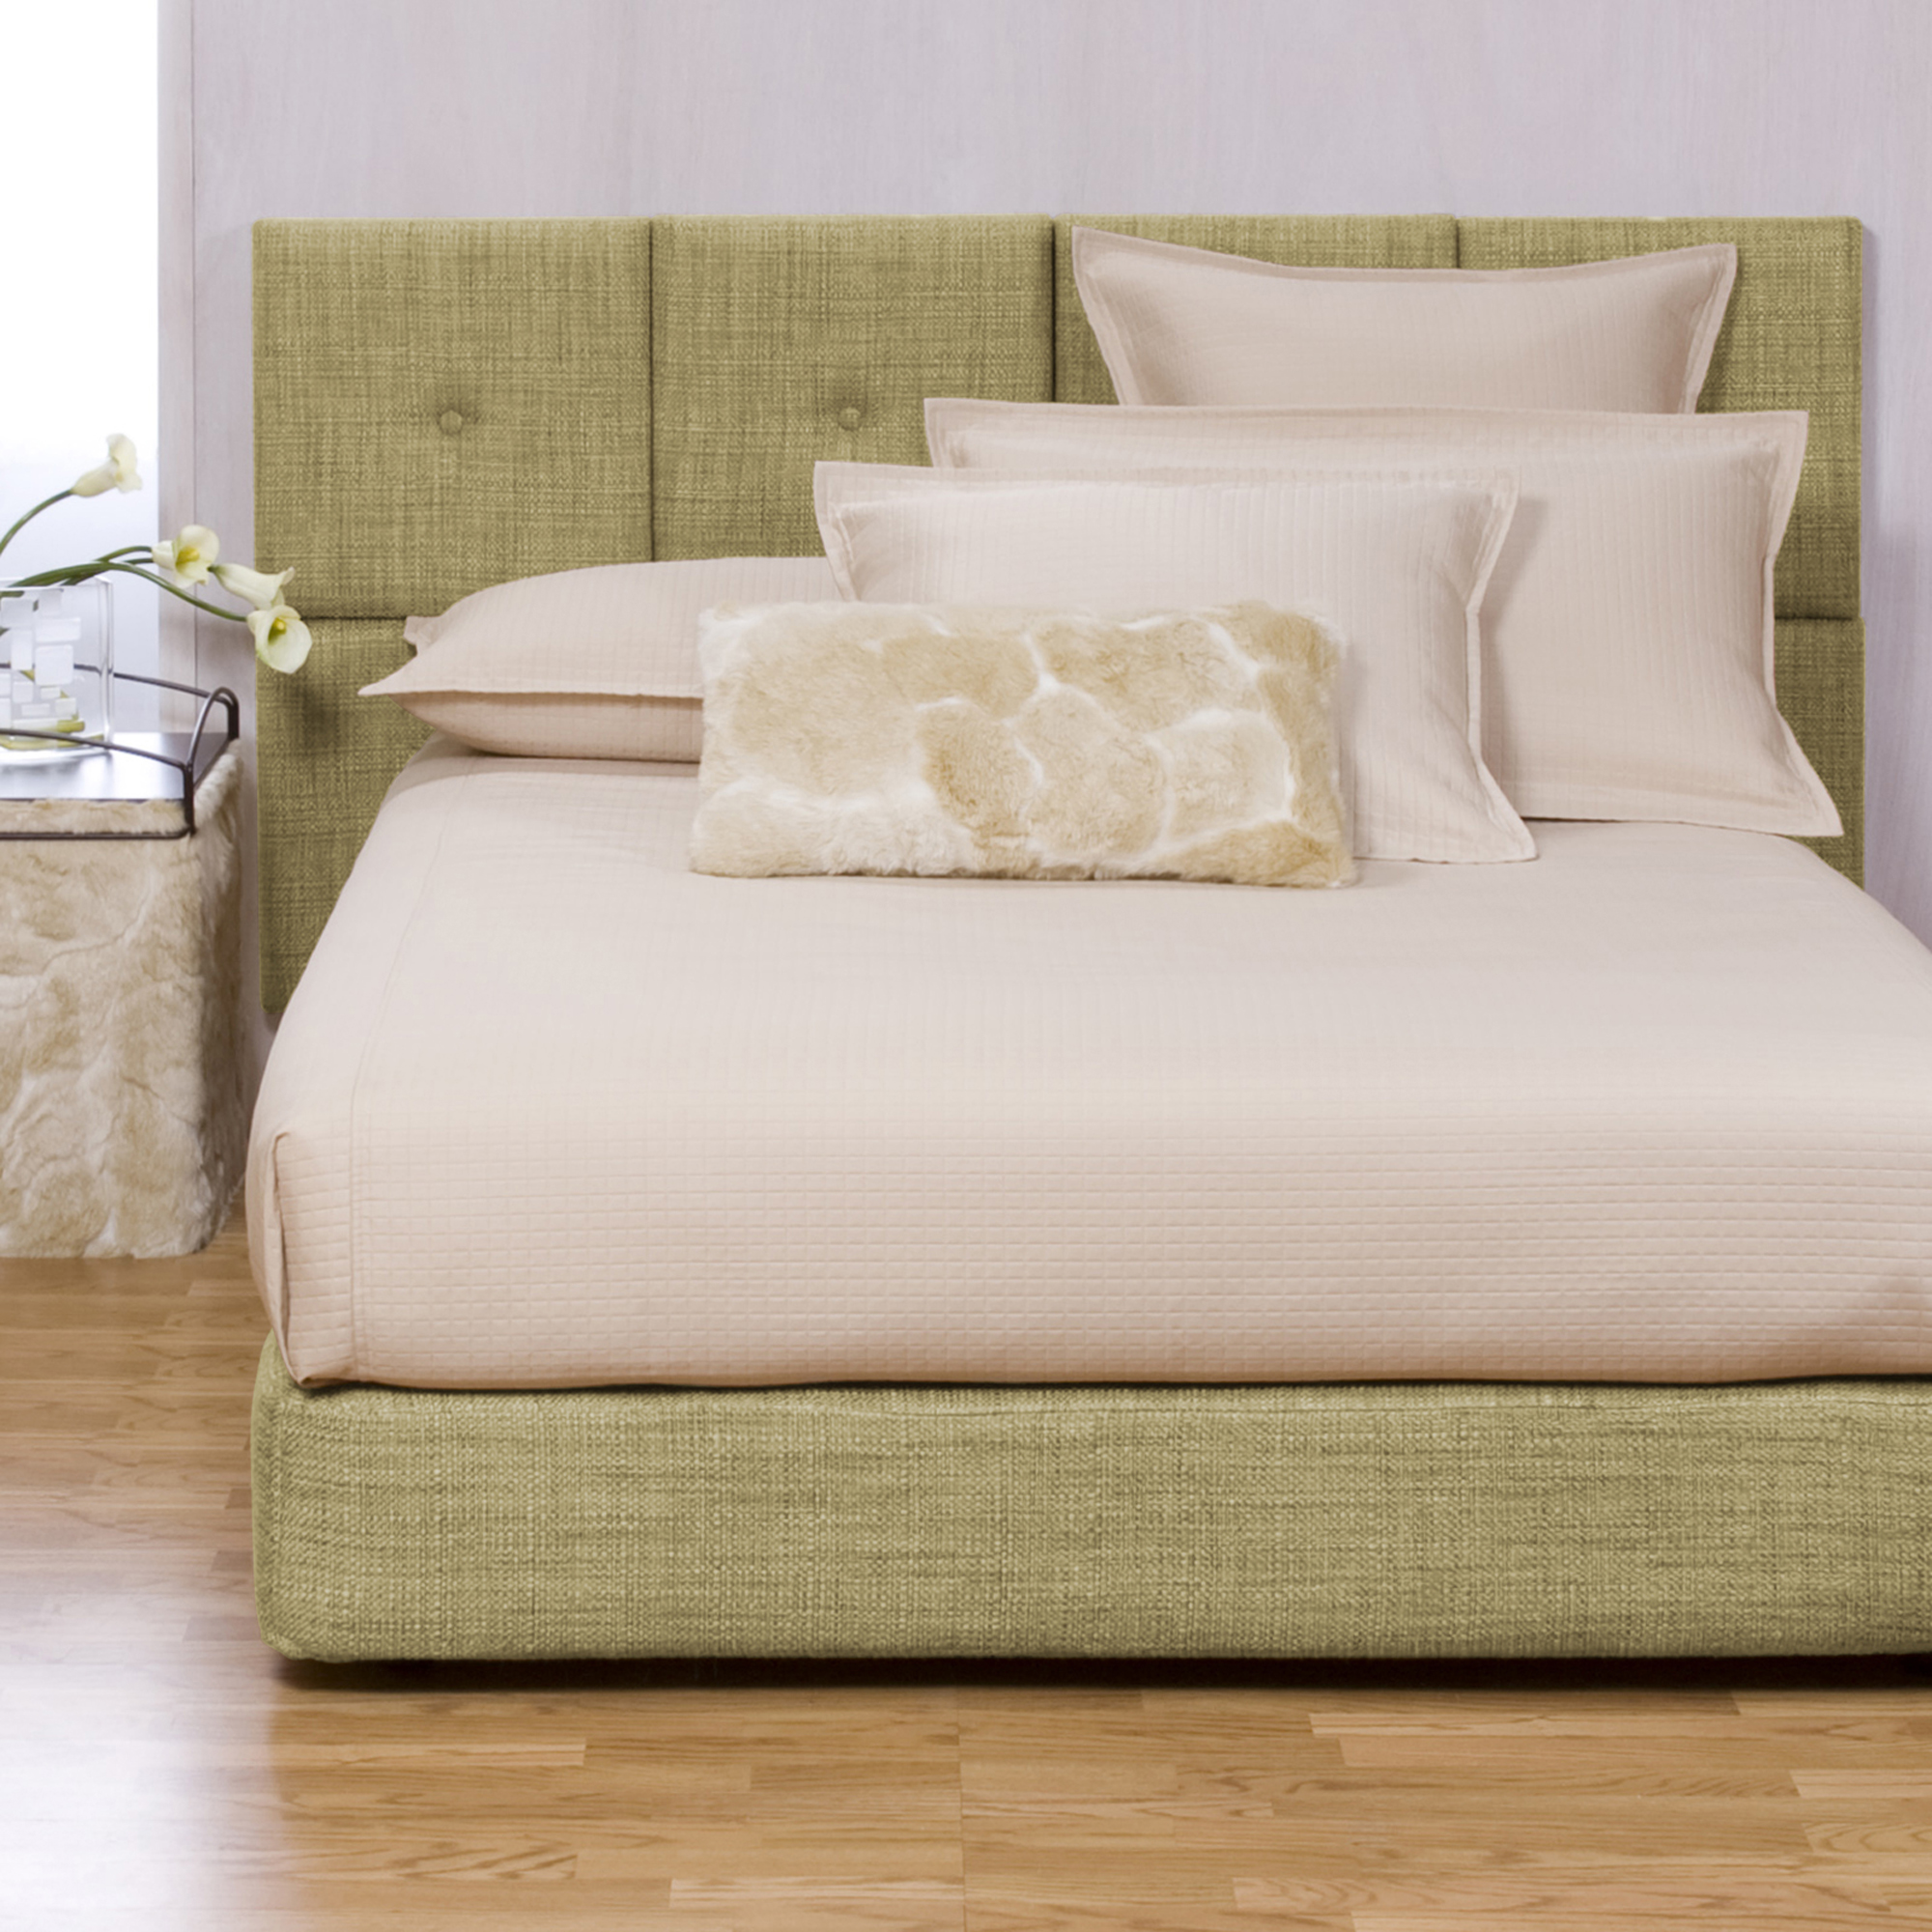 Boxspring Cover in Coco Peridot shown.  View all available options online >